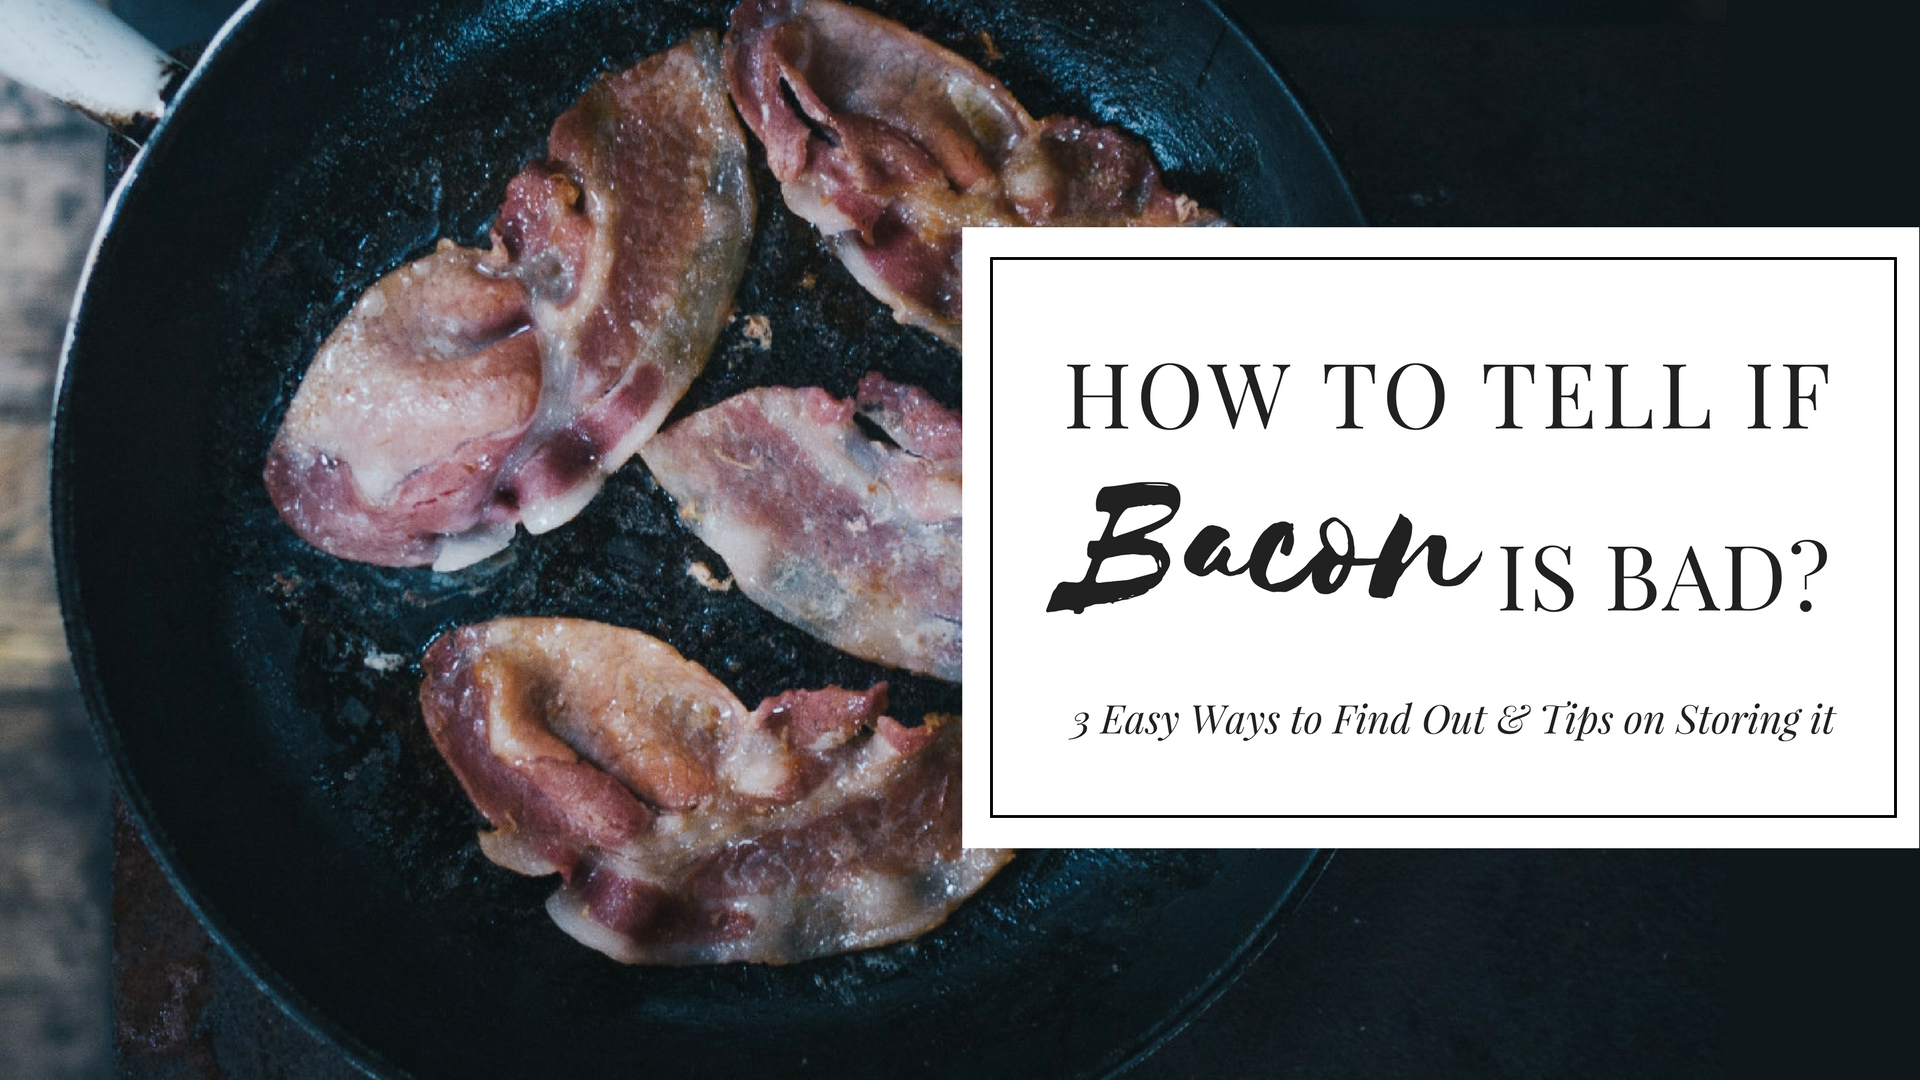 How to Tell If Bacon Is Bad: 3 Easy Ways to Find Out - StreetSmart